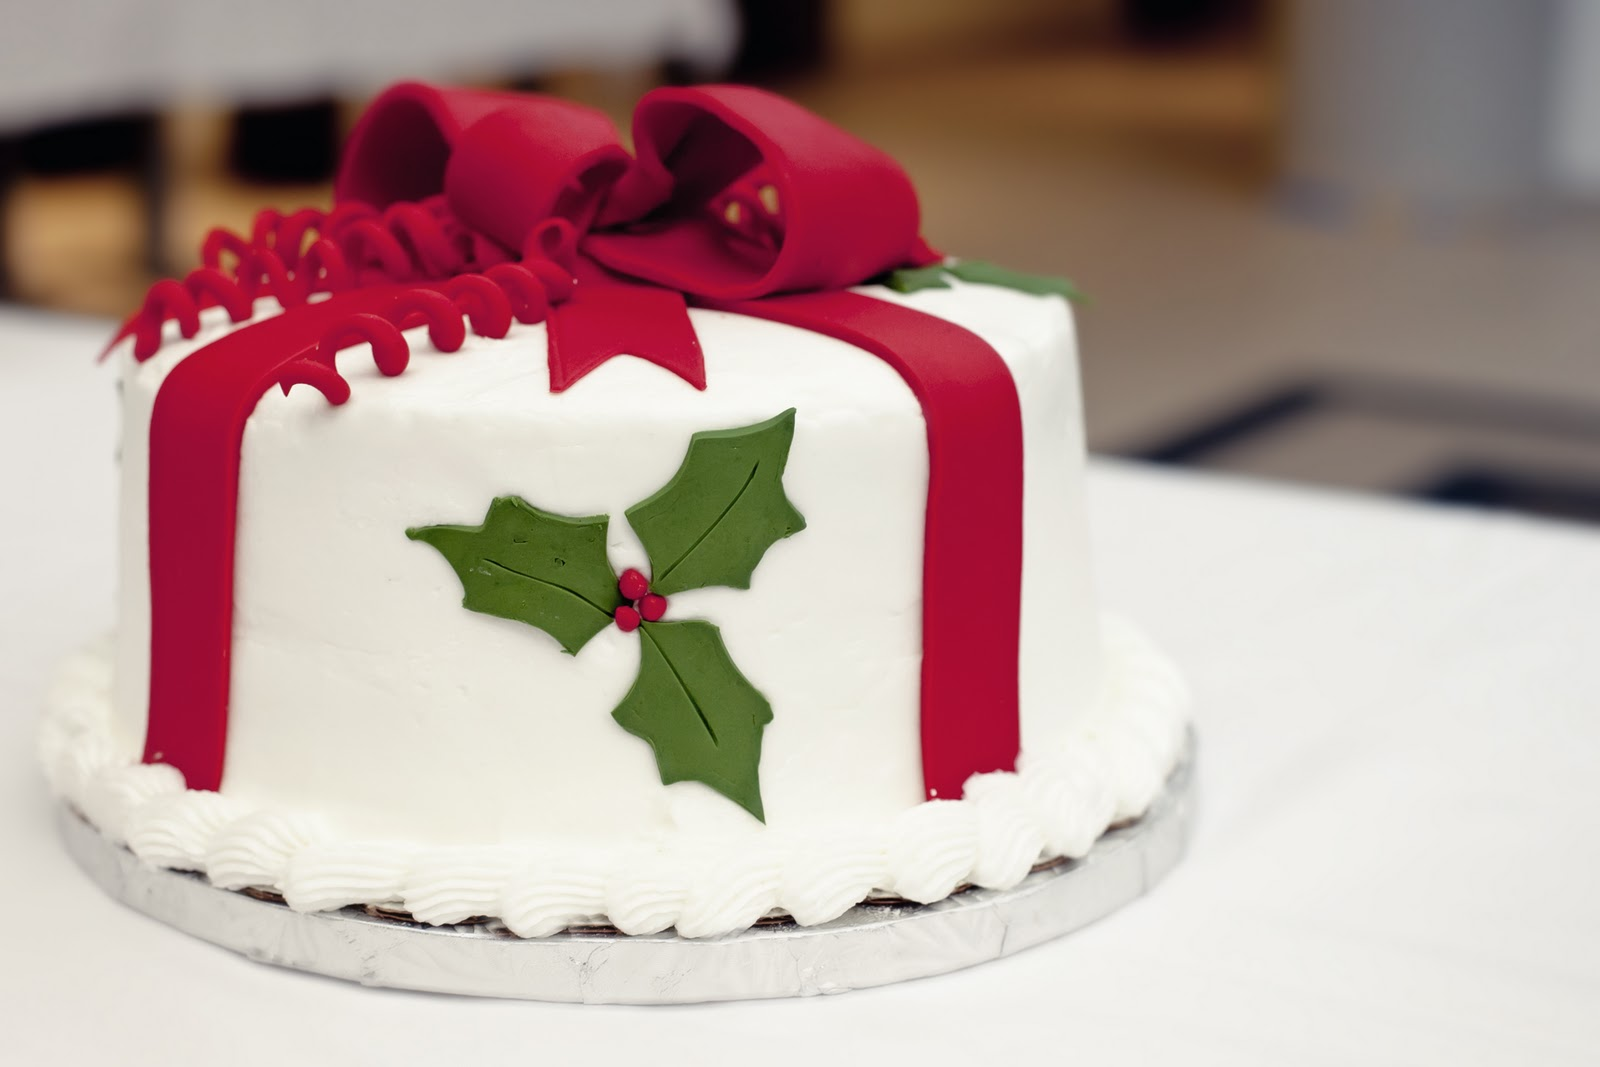 images of christmas cake - photo #13